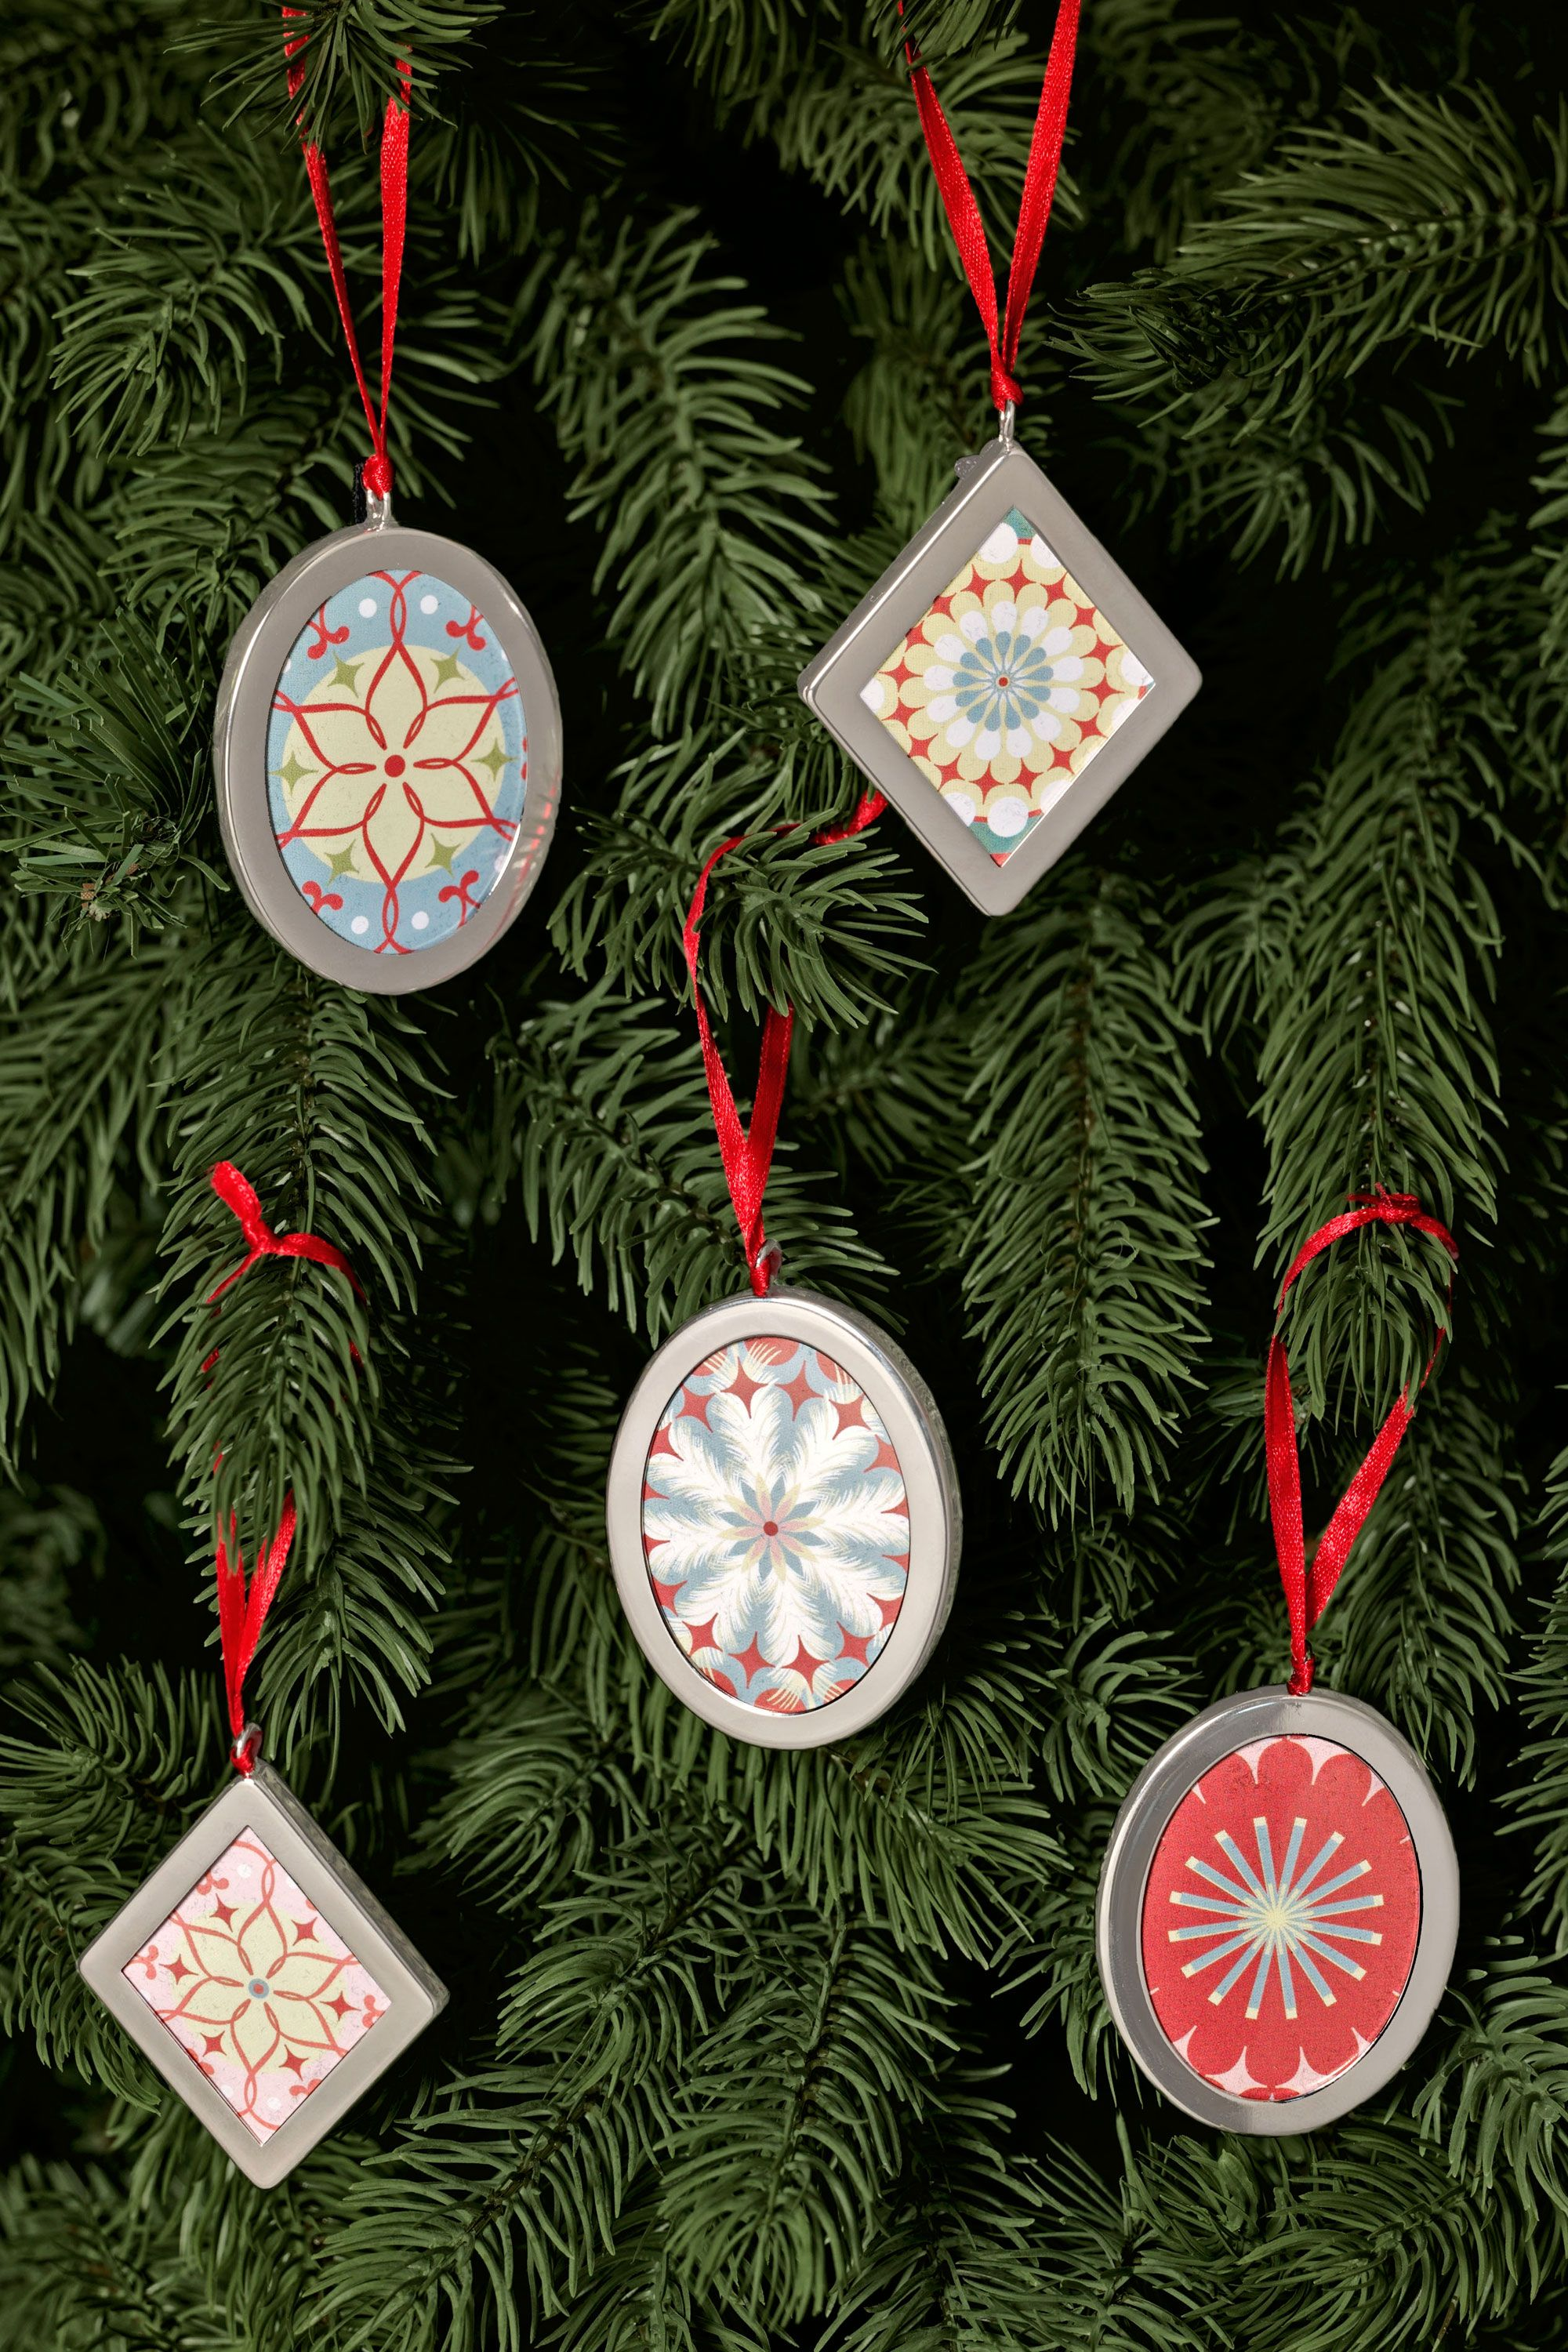 50 DIY Homemade Christmas Decorations - Christmas Decor You Can Make